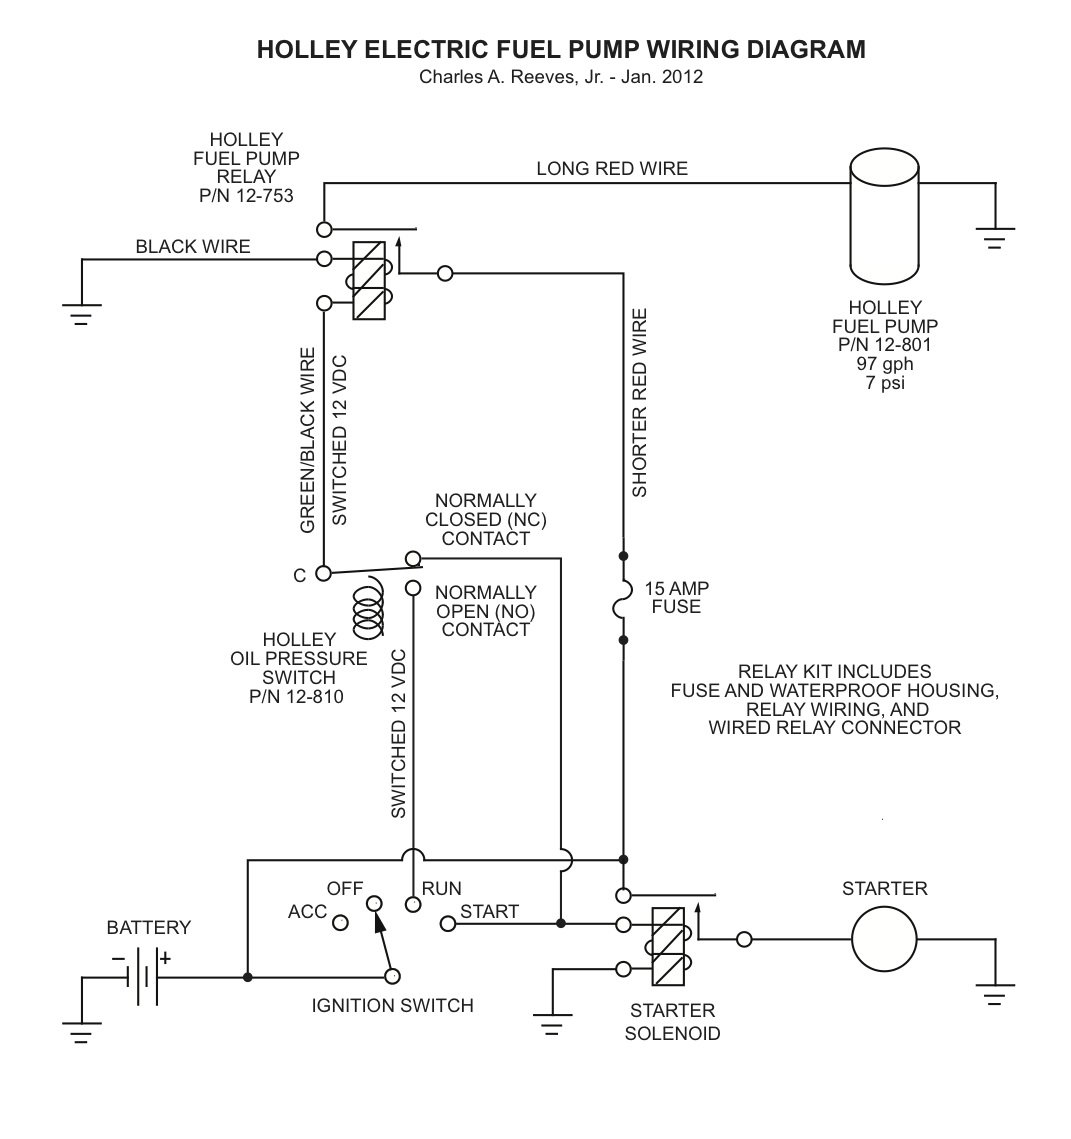 Installing a Holley Electric Fuel Pump in a 1966 Mustang - Ford ...